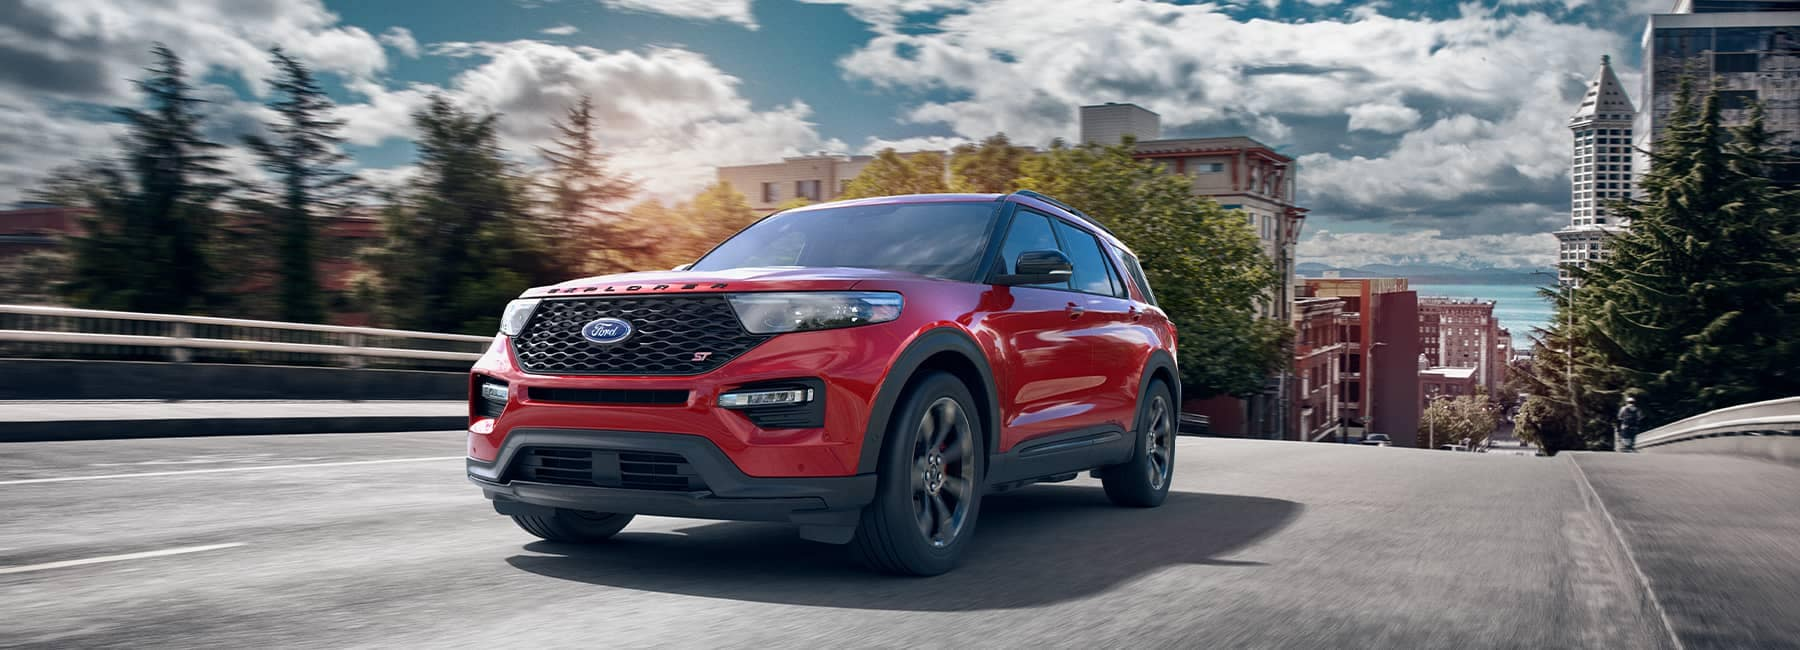 Red 2021 Ford Explorer driving up a hill out of a city